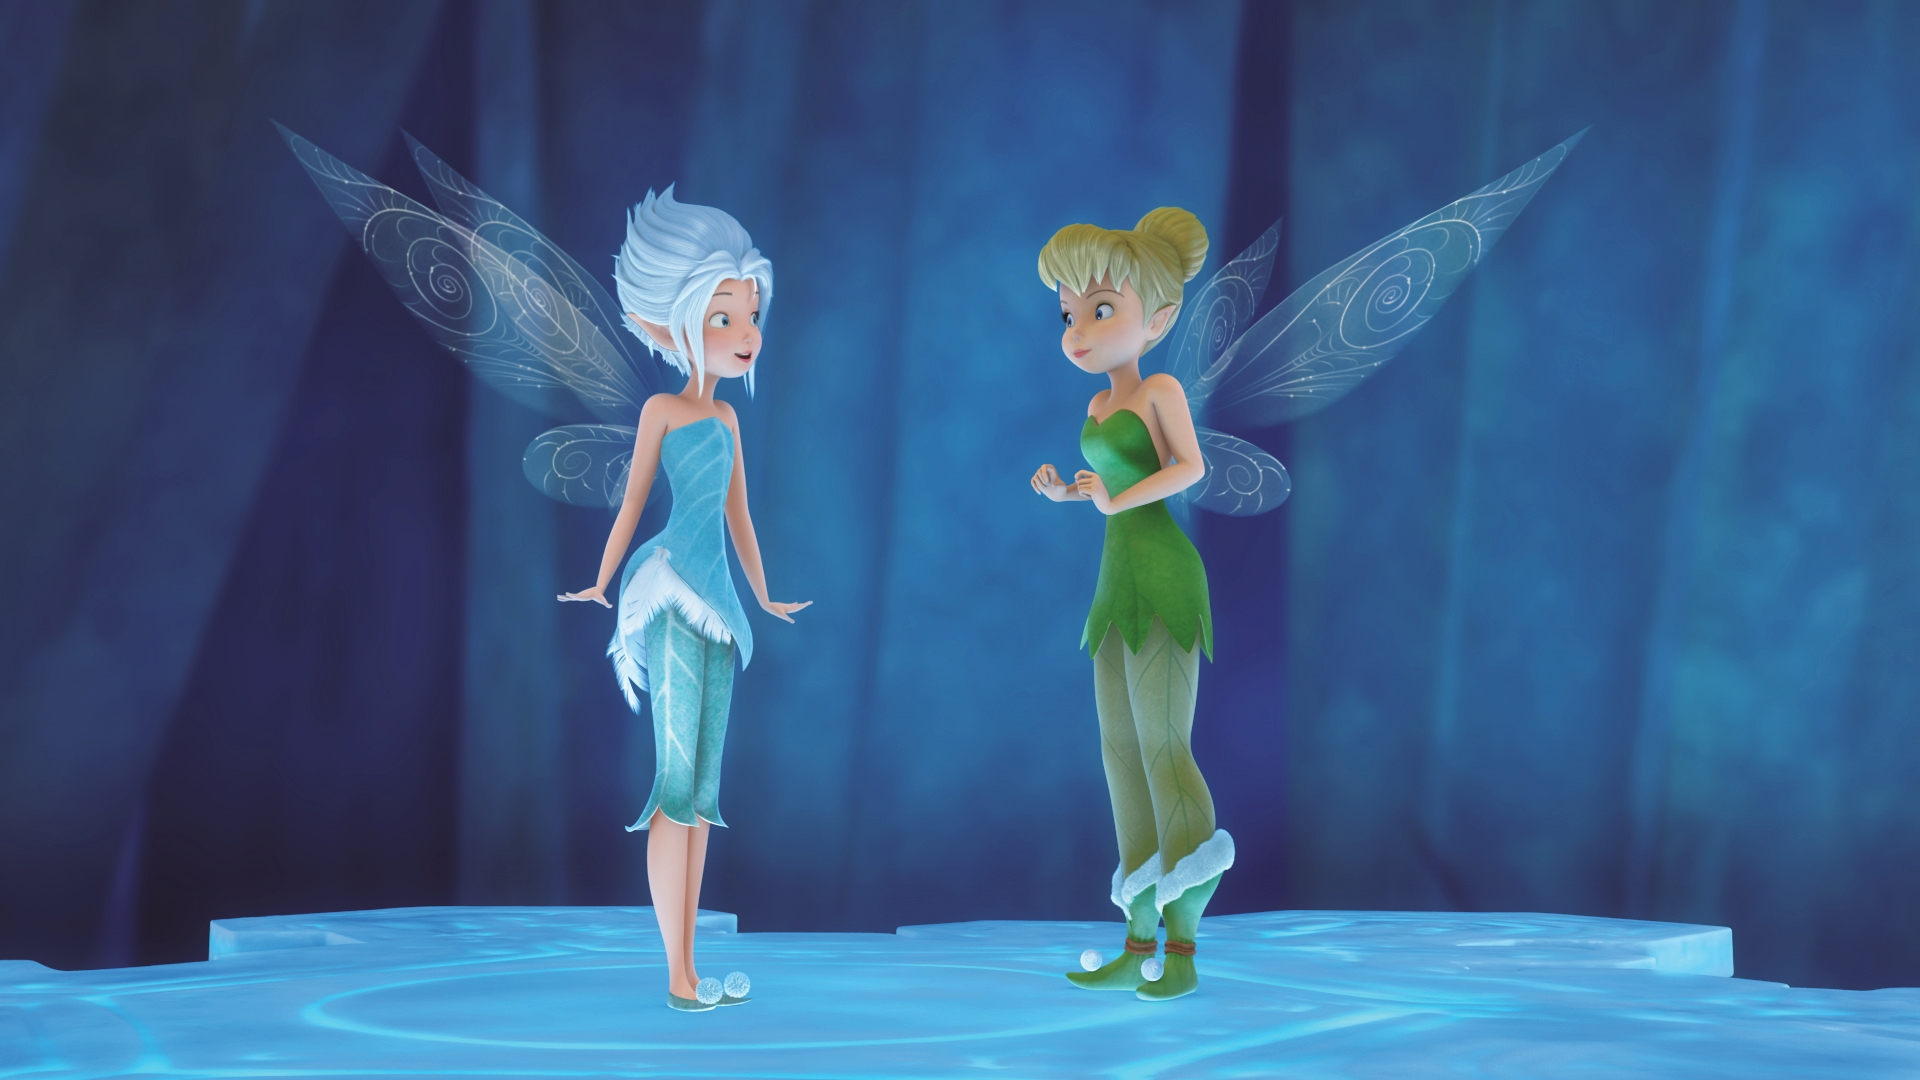 Periwinkle Images Periwinkle Tinkerbell Hd Wallpaper And